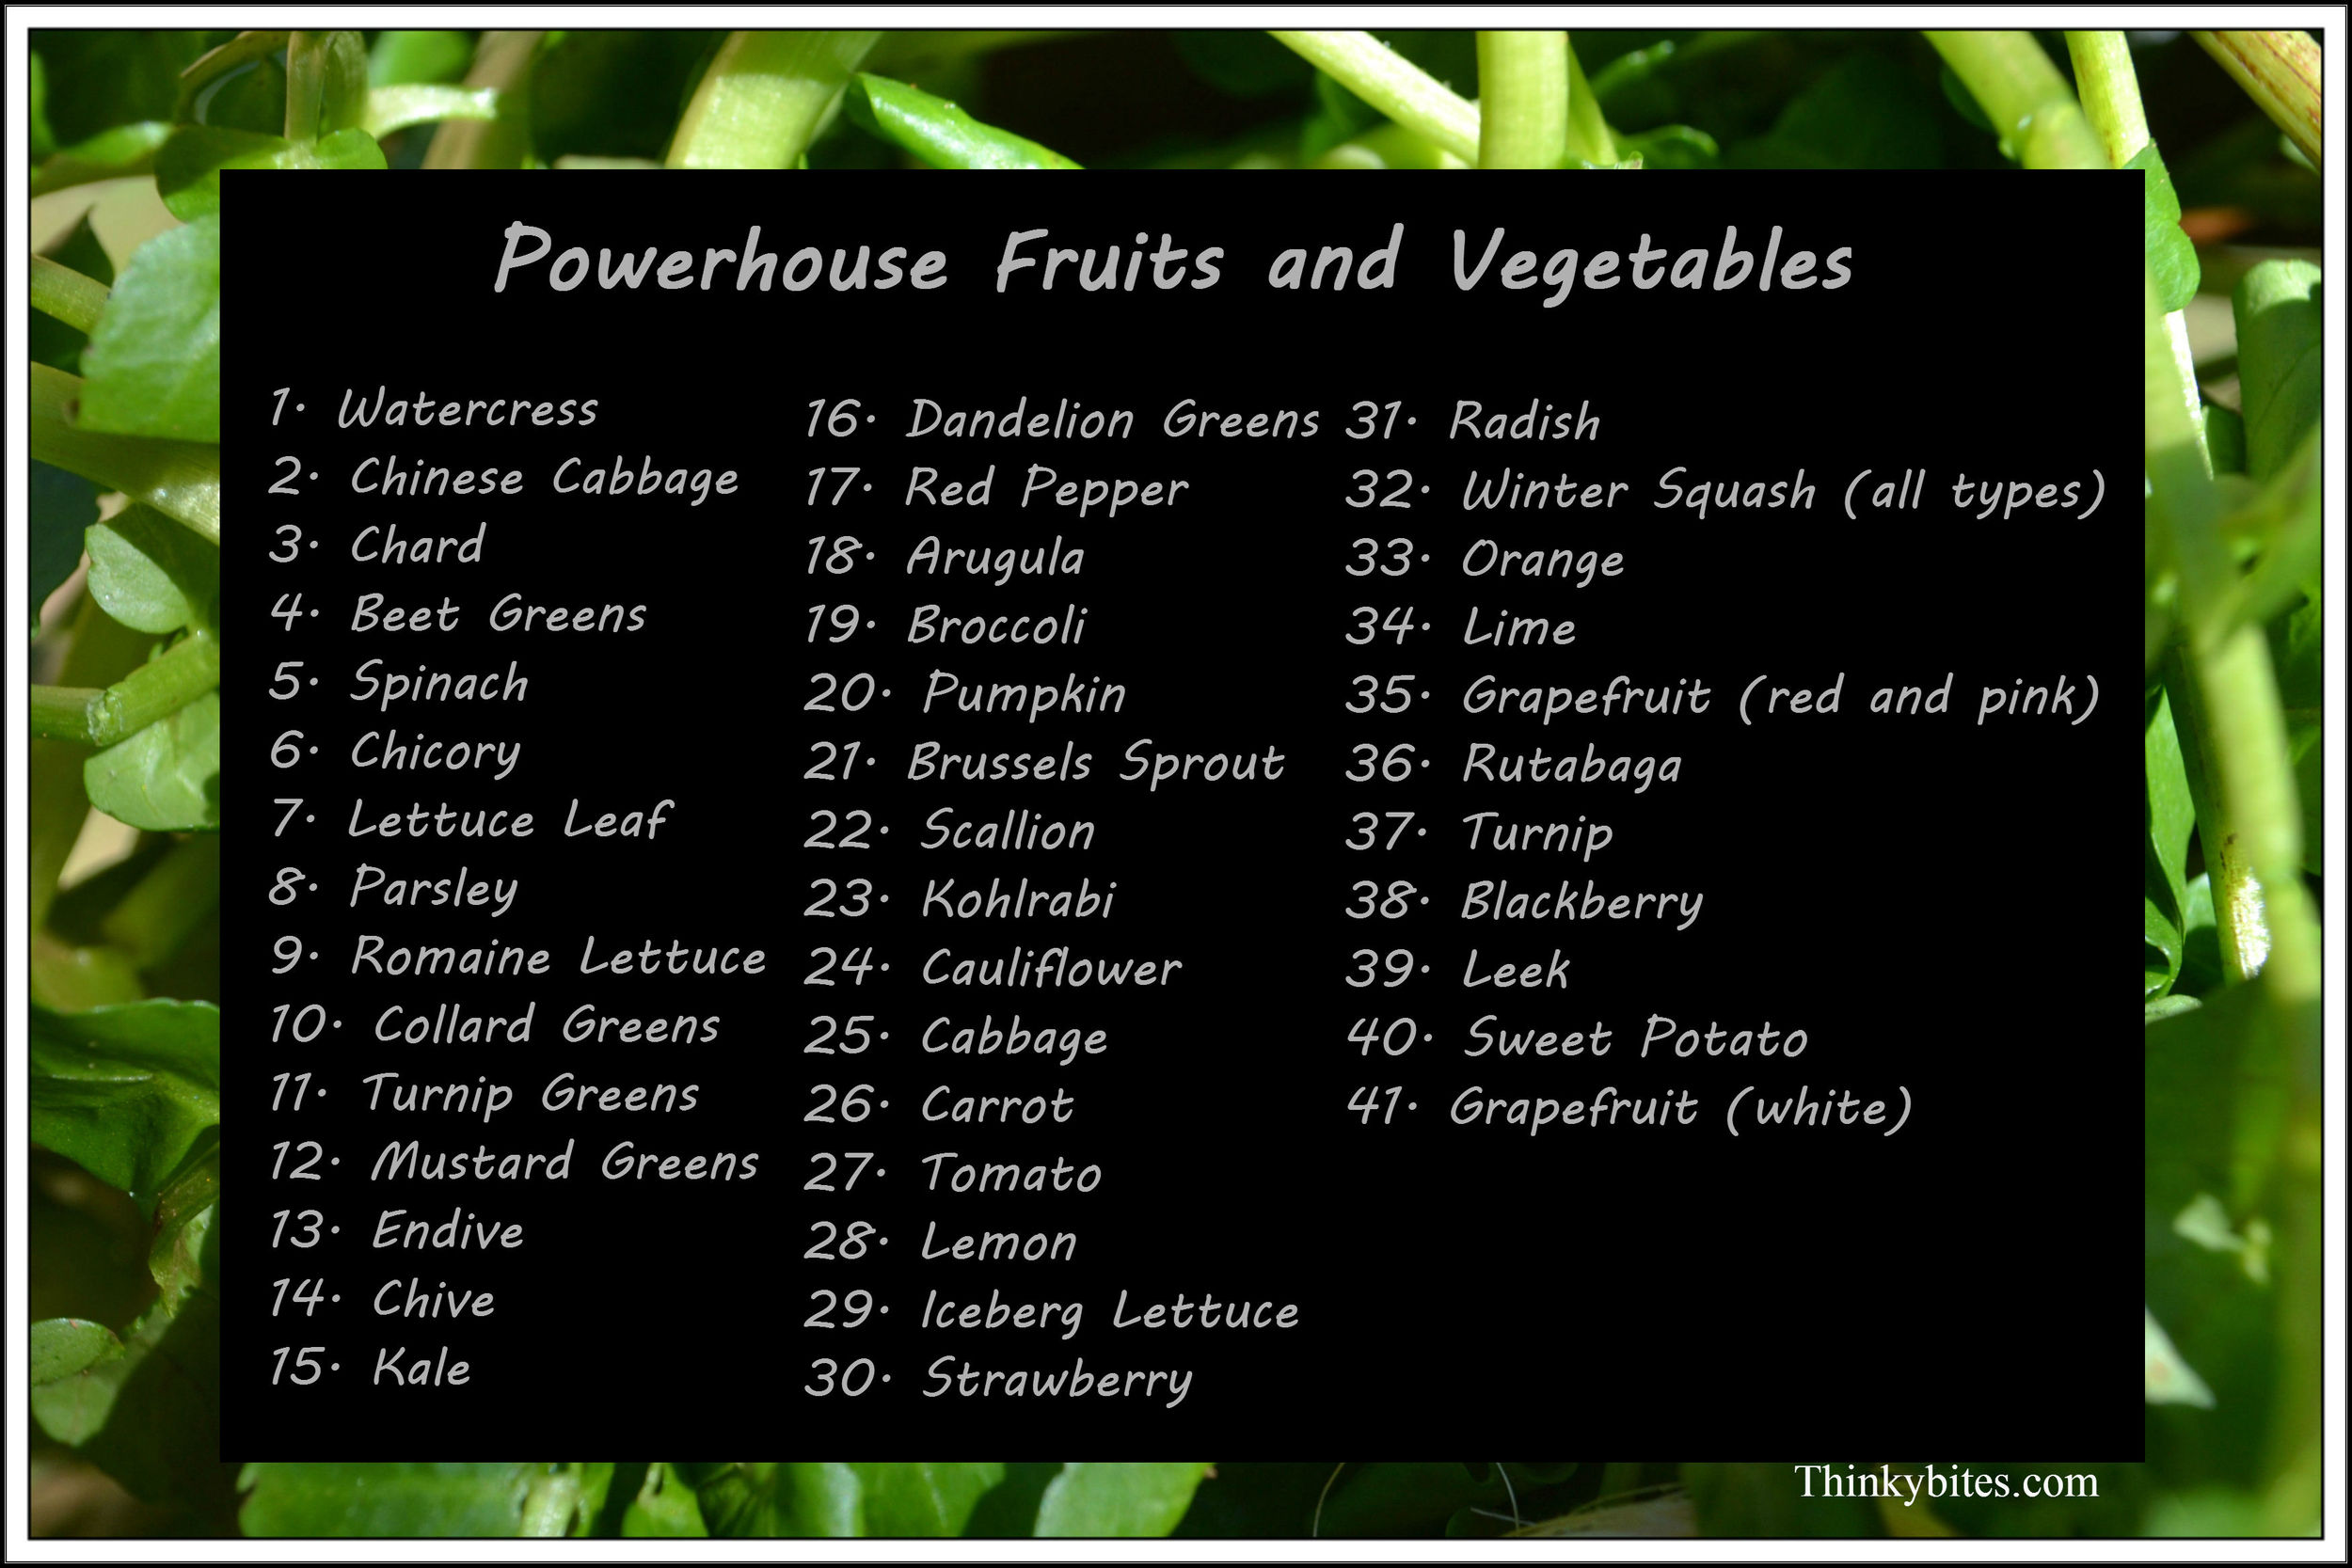 Powerhouse Fruits and Vegetable list from Di Noia J. Defining Powerhouse Fruits and Vegetables: A Nutrient Density Approach. Prev Chronic Dis 2014;11:130390. DOI:   http://dx.doi.org/10.5888/pcd11.130390